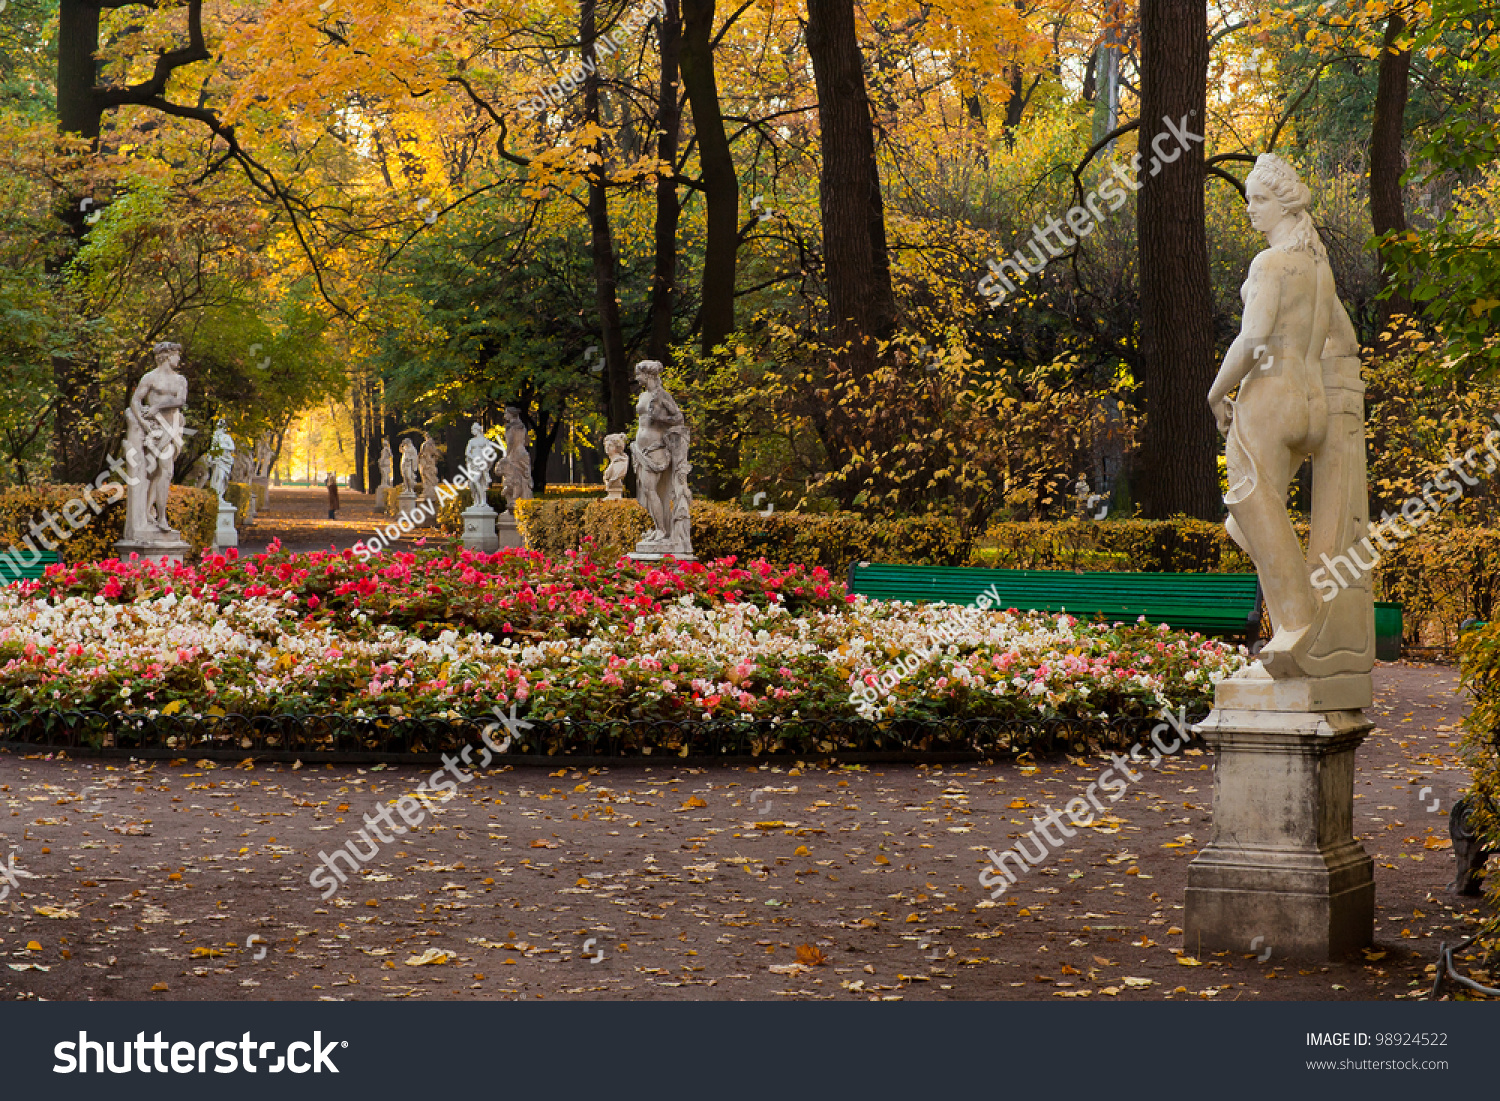 Flower Bed Old Park Summer Garden Stock Photo (Royalty Free ...